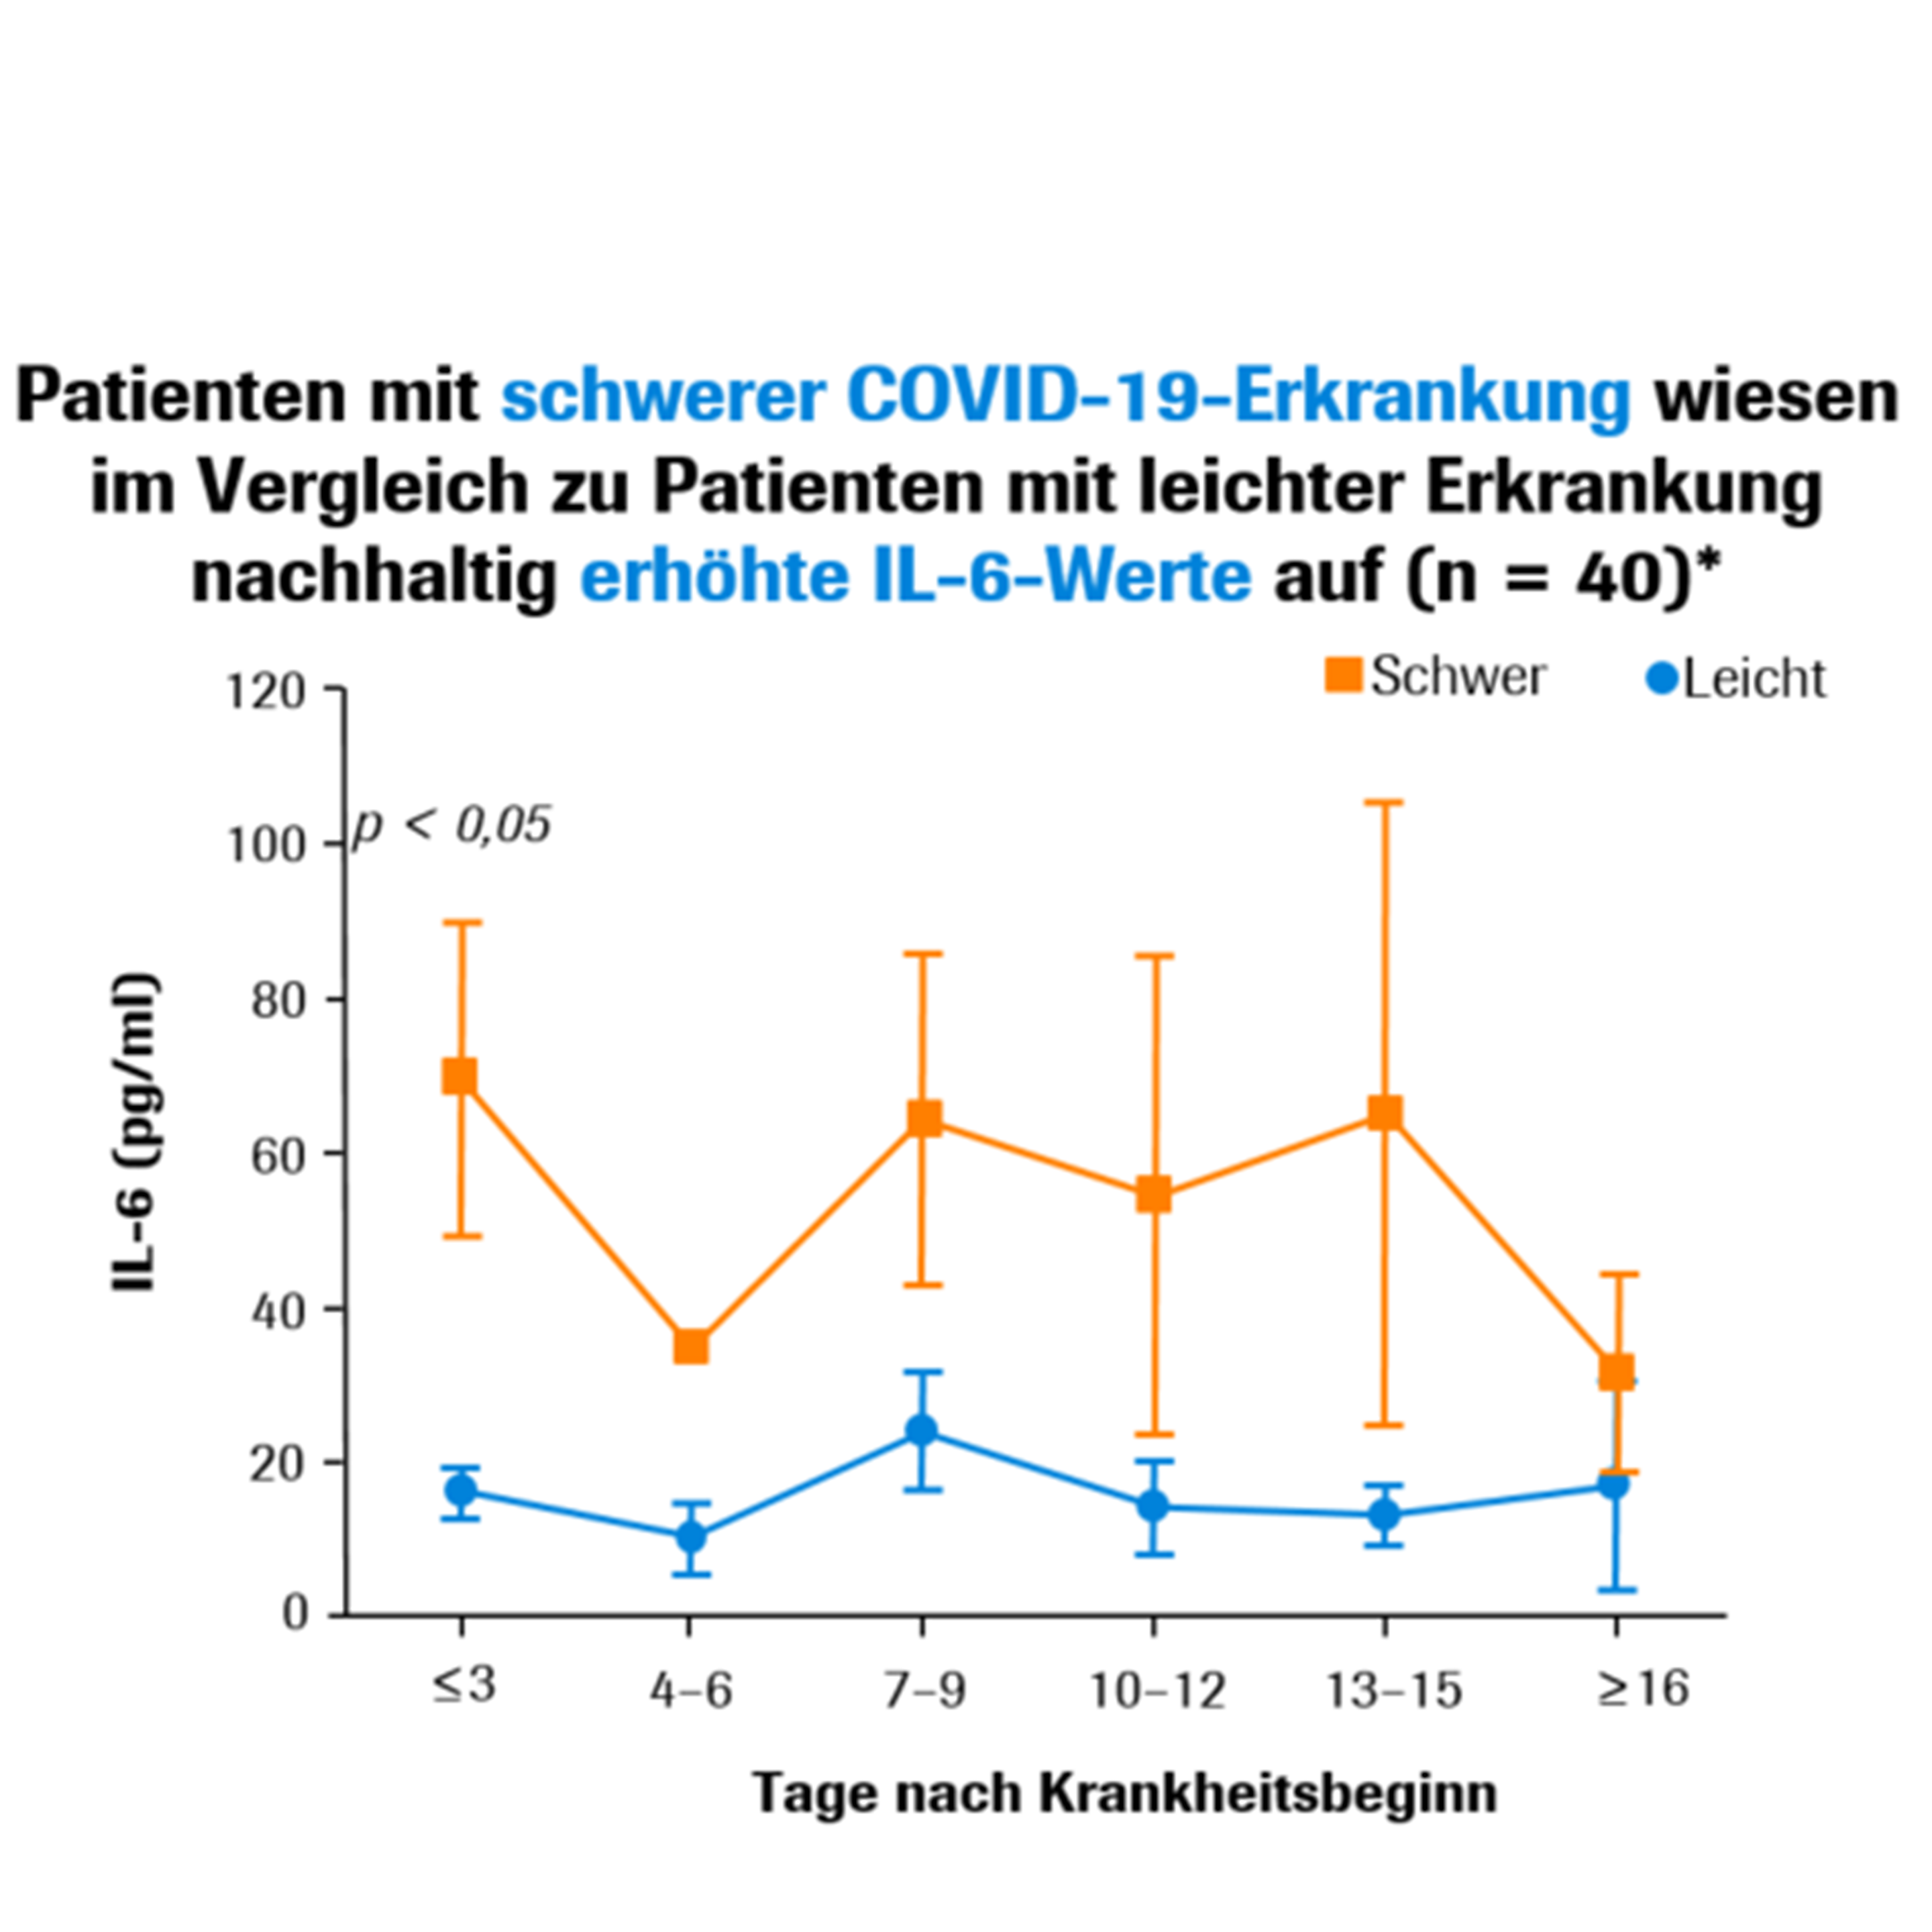 IL-6 showed sustained increases in patients with severe COVID-19 disease